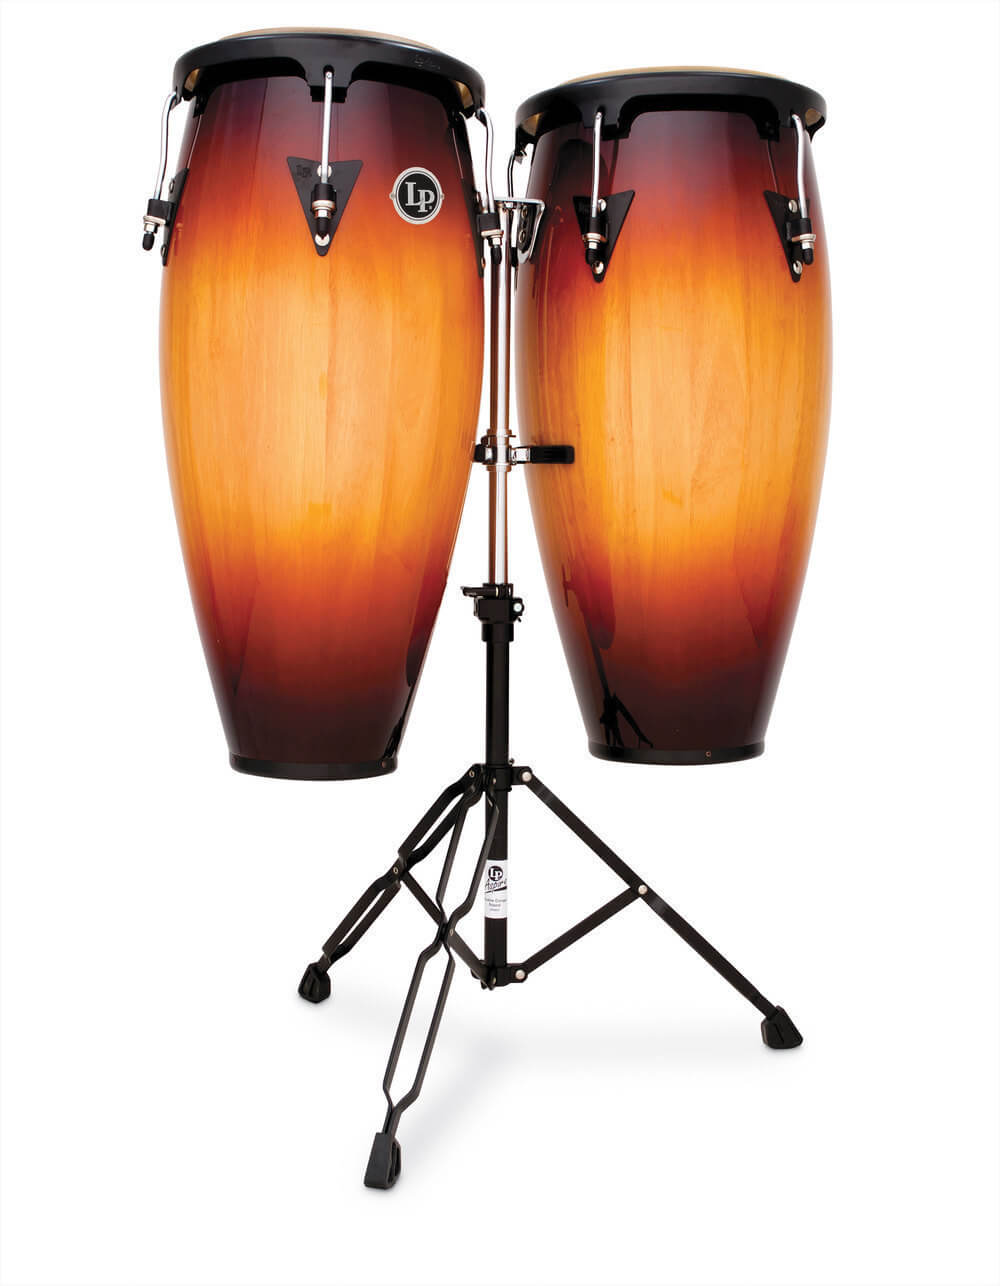 Set Congas Latin Percussion Lpa646 10-11 Vintage Sunburst